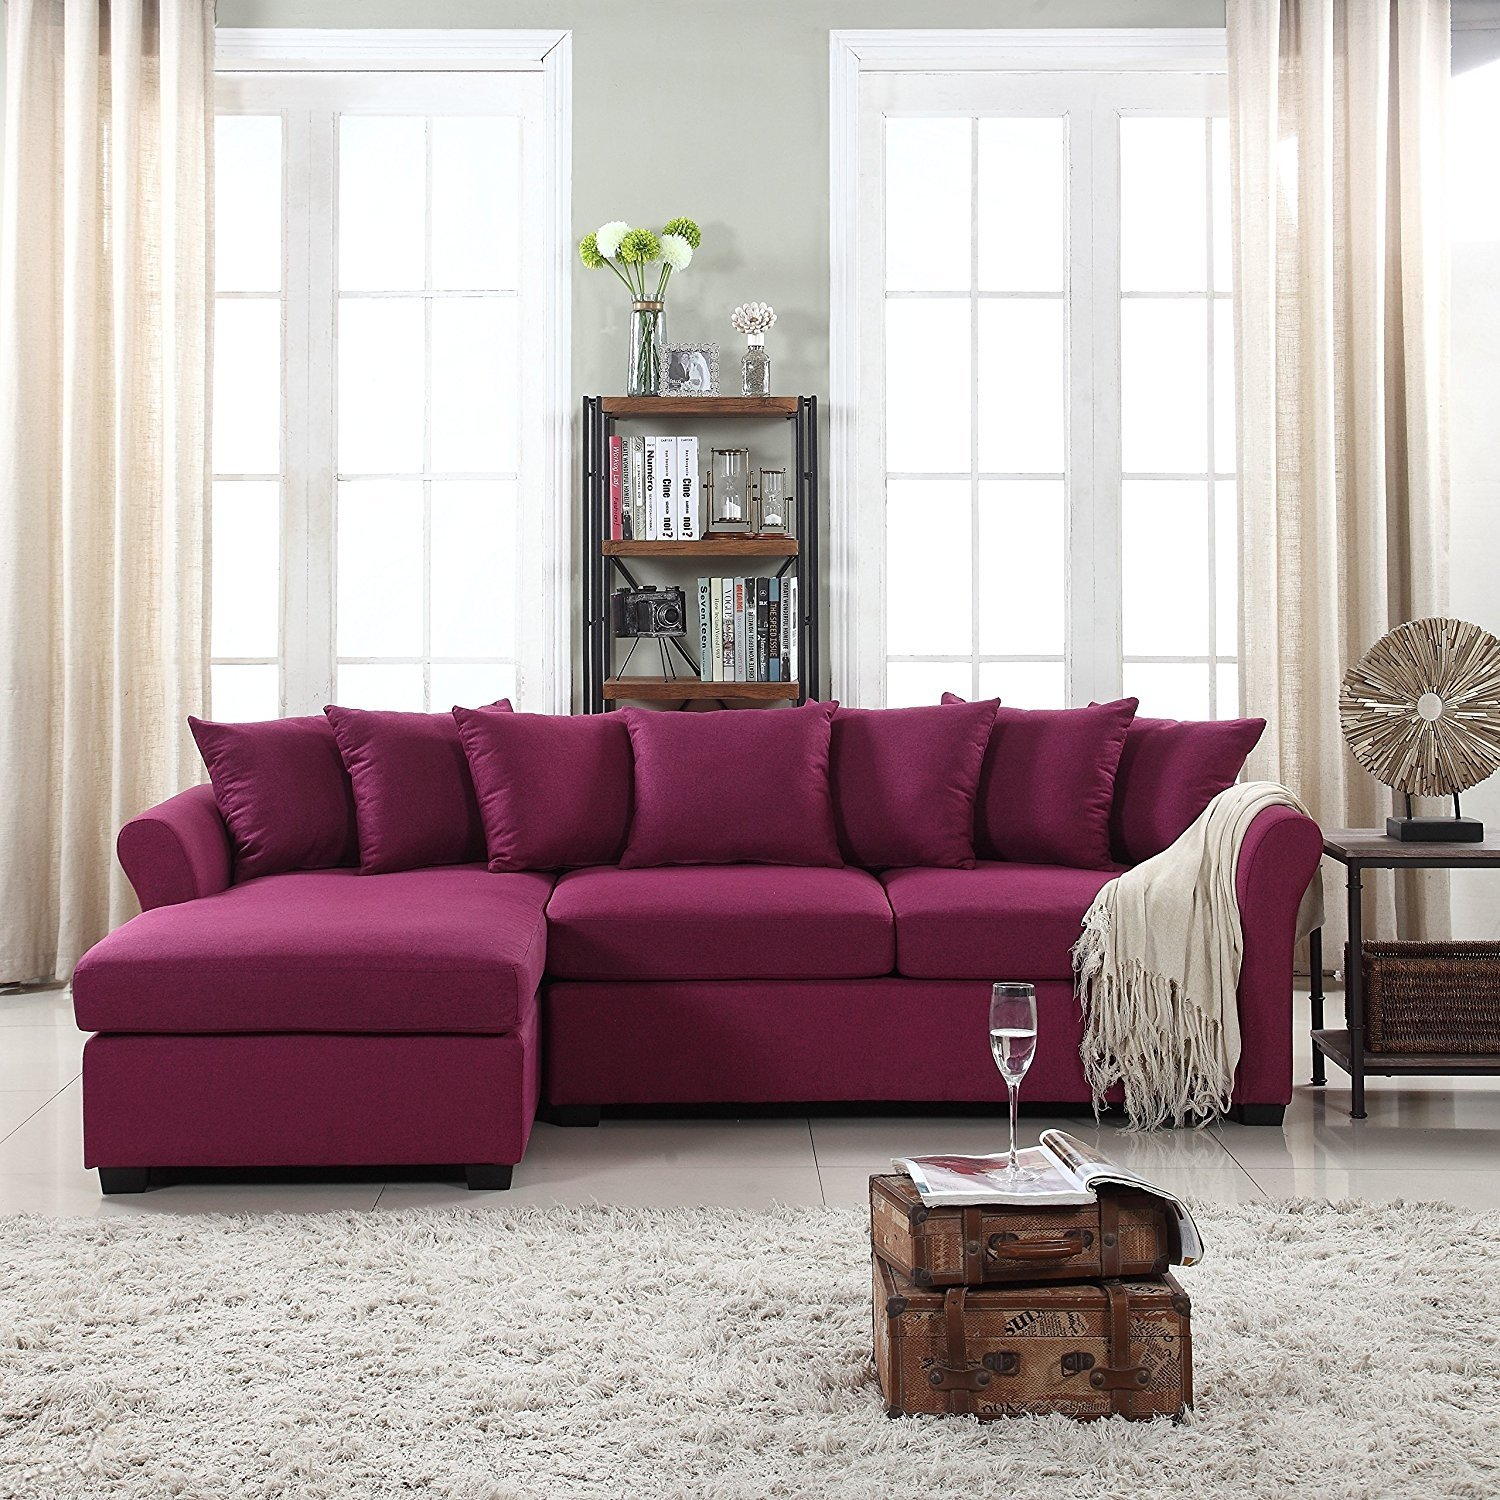 Details about Modern Large Fabric Sectional Sofa, L-Shape Couch with Wide  Chaise, Purple